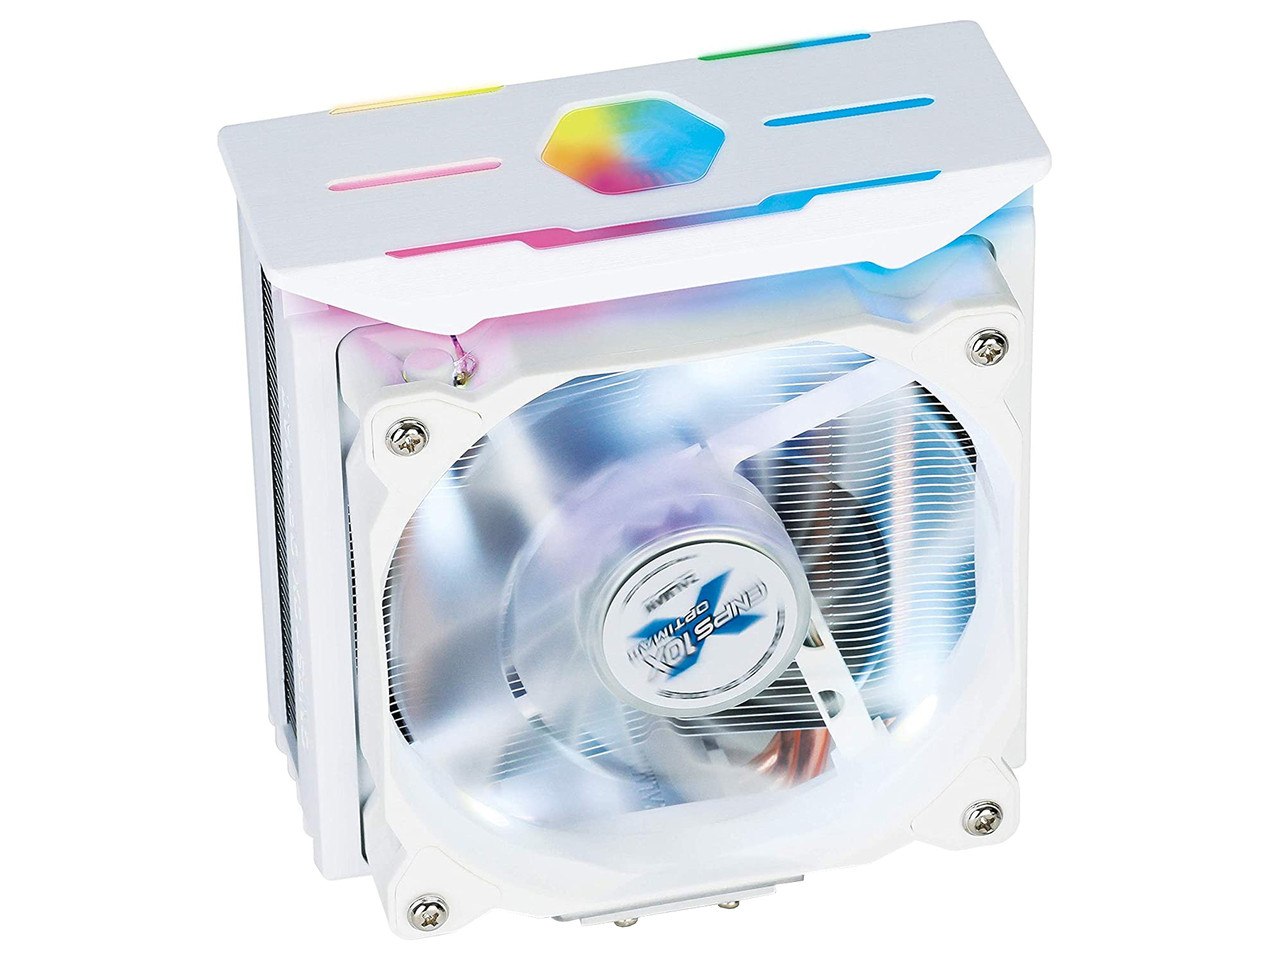 Cooler Zalman, for S115x/1366/20xx/AMD, CNPS10X Optima II, RGB, 4 pipes, 12cm, 1500rpm, 27dBA